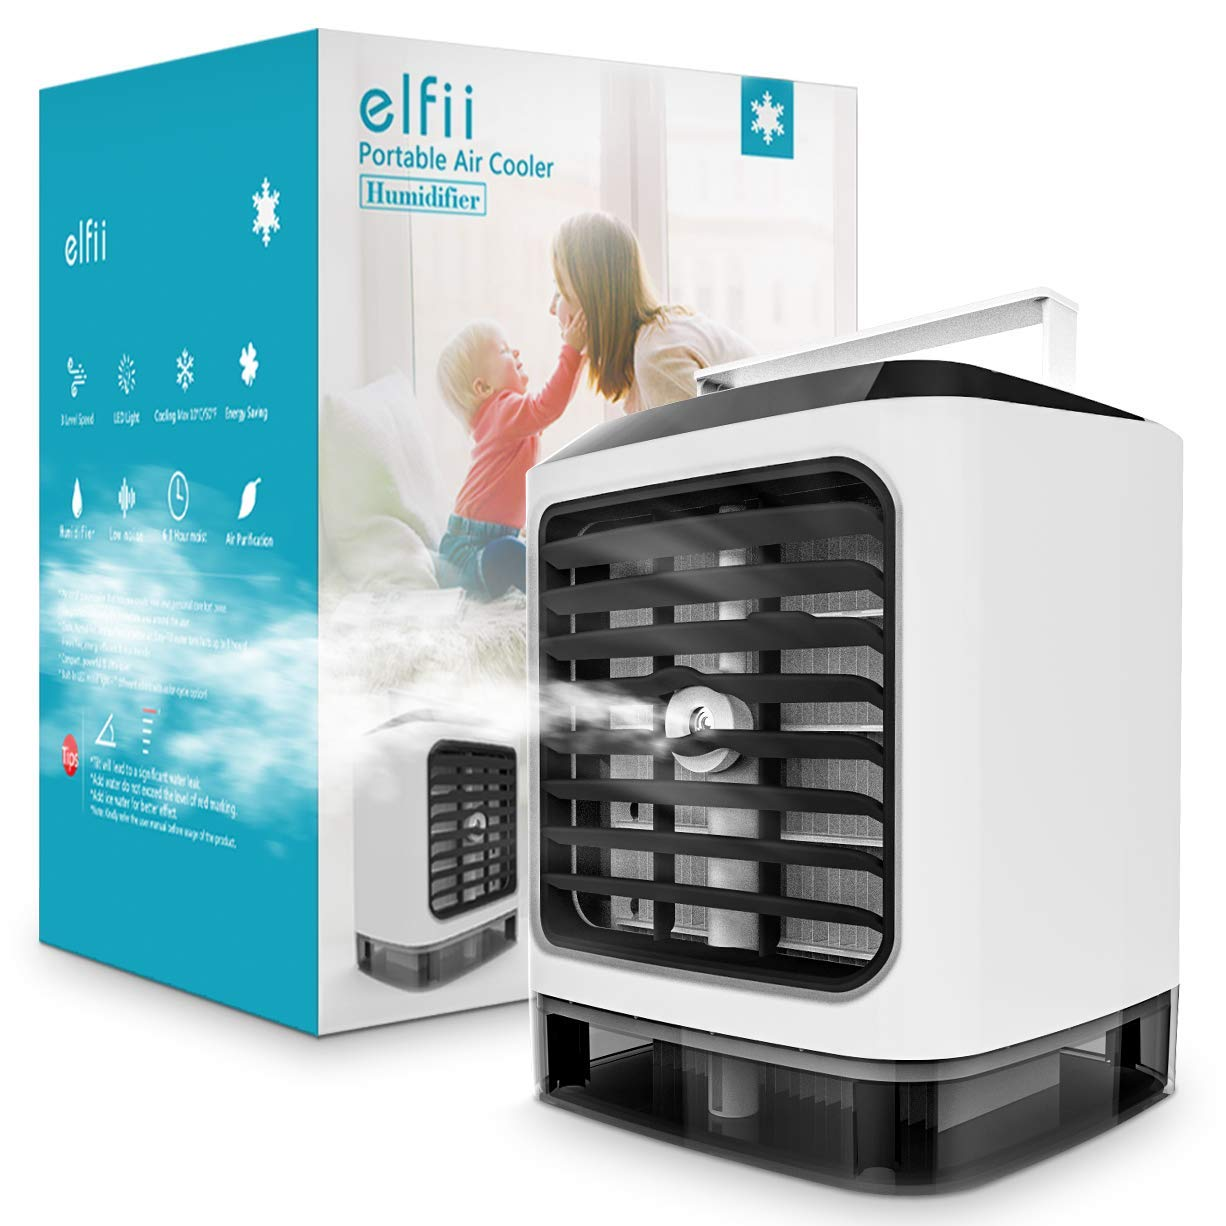 Elfii Ultra Evaporative Personal Space Air Cooler | Portable Air Conditioner,Humidifier,Moist,Low Noise,Purifies Air, LED Light, Small Desk Fan | Mini Coolair AC for Home/Office/Bedroom/Outdoor/Baby by Elfii